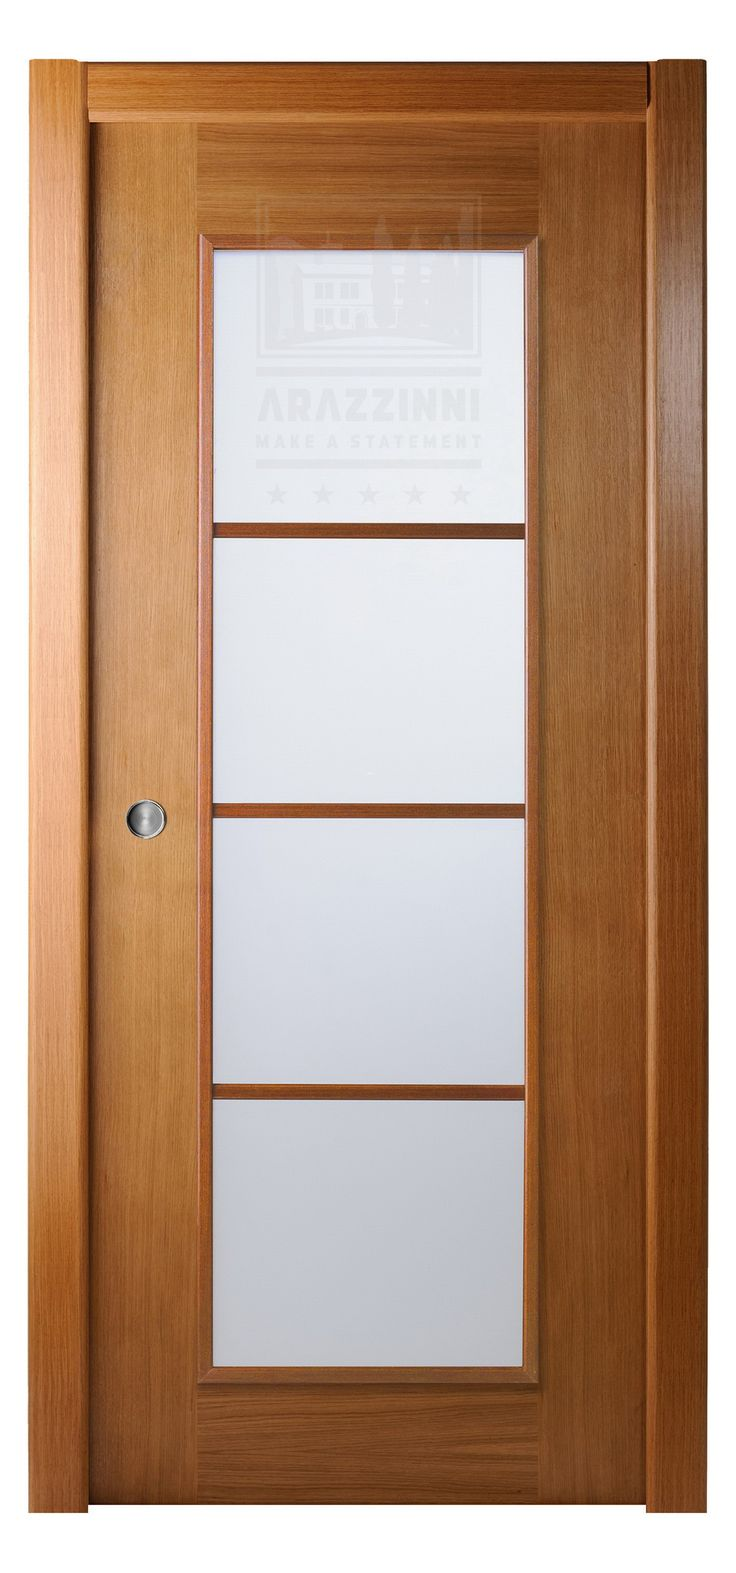 Arazzinni Modern Lux Interior Pocket Door Oak Nice